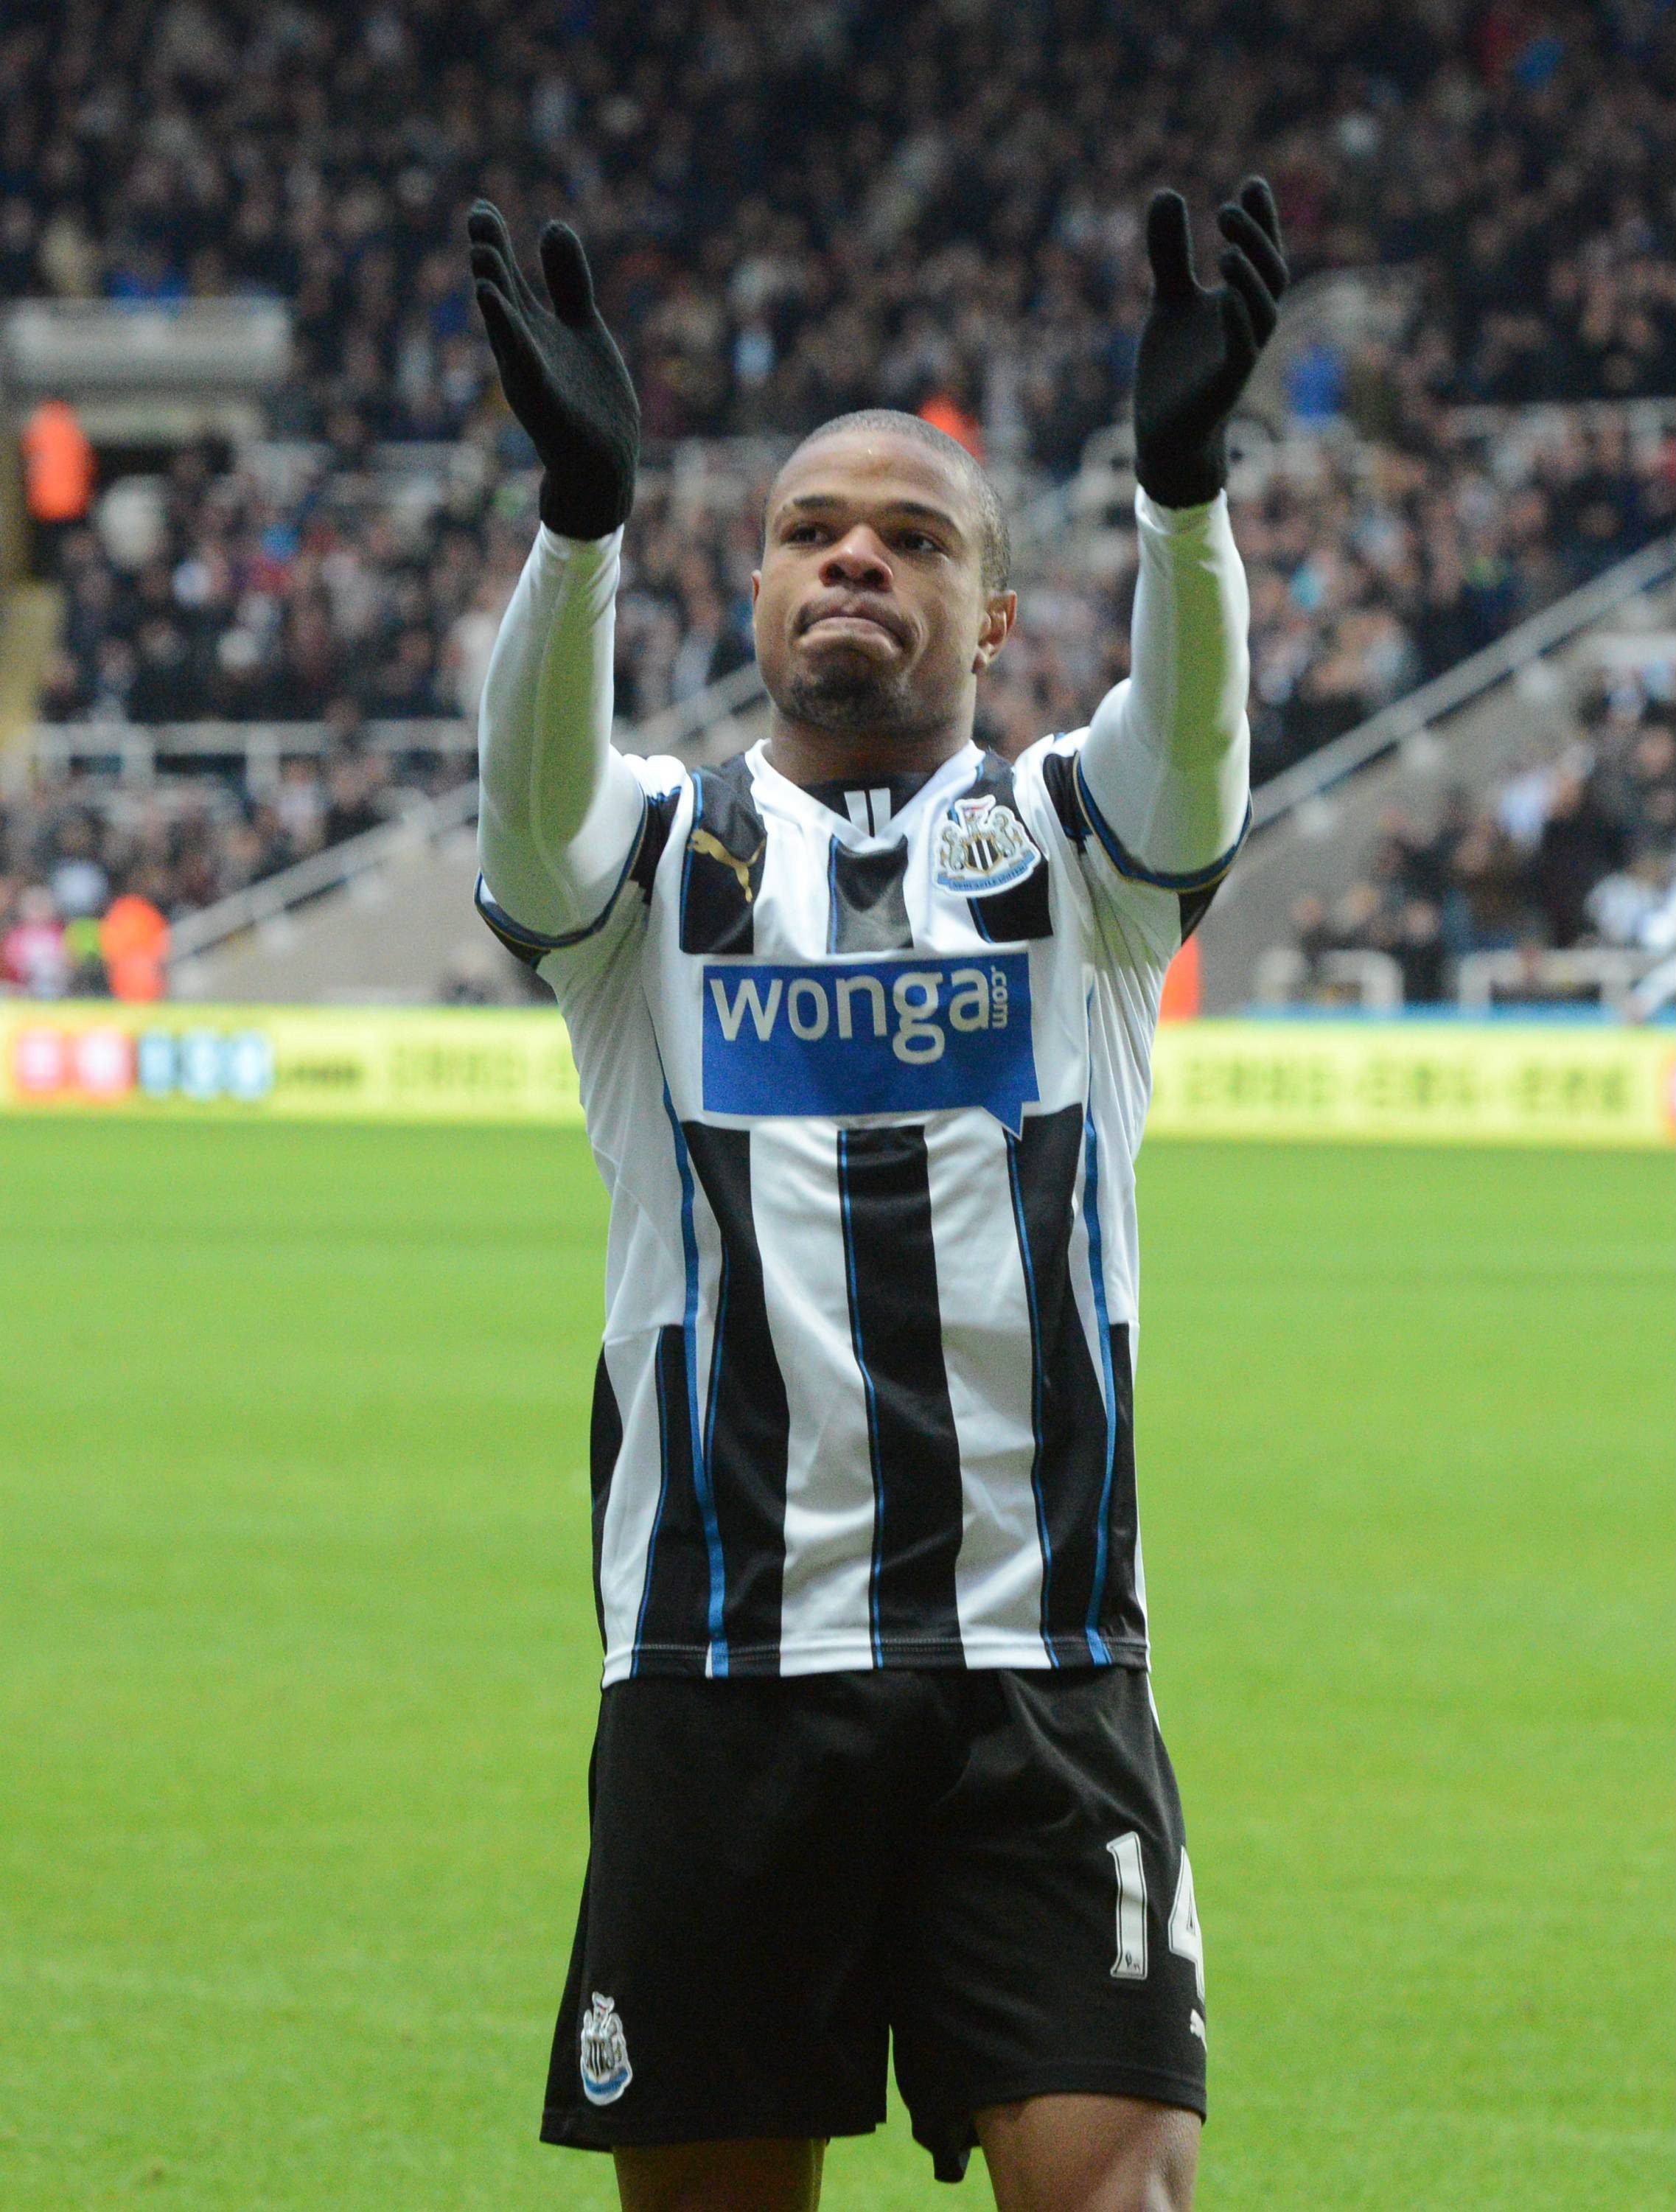 BACK IN FULL TRAINING: Loic Remy is set to return to Newcastle's starting line-up this weekend